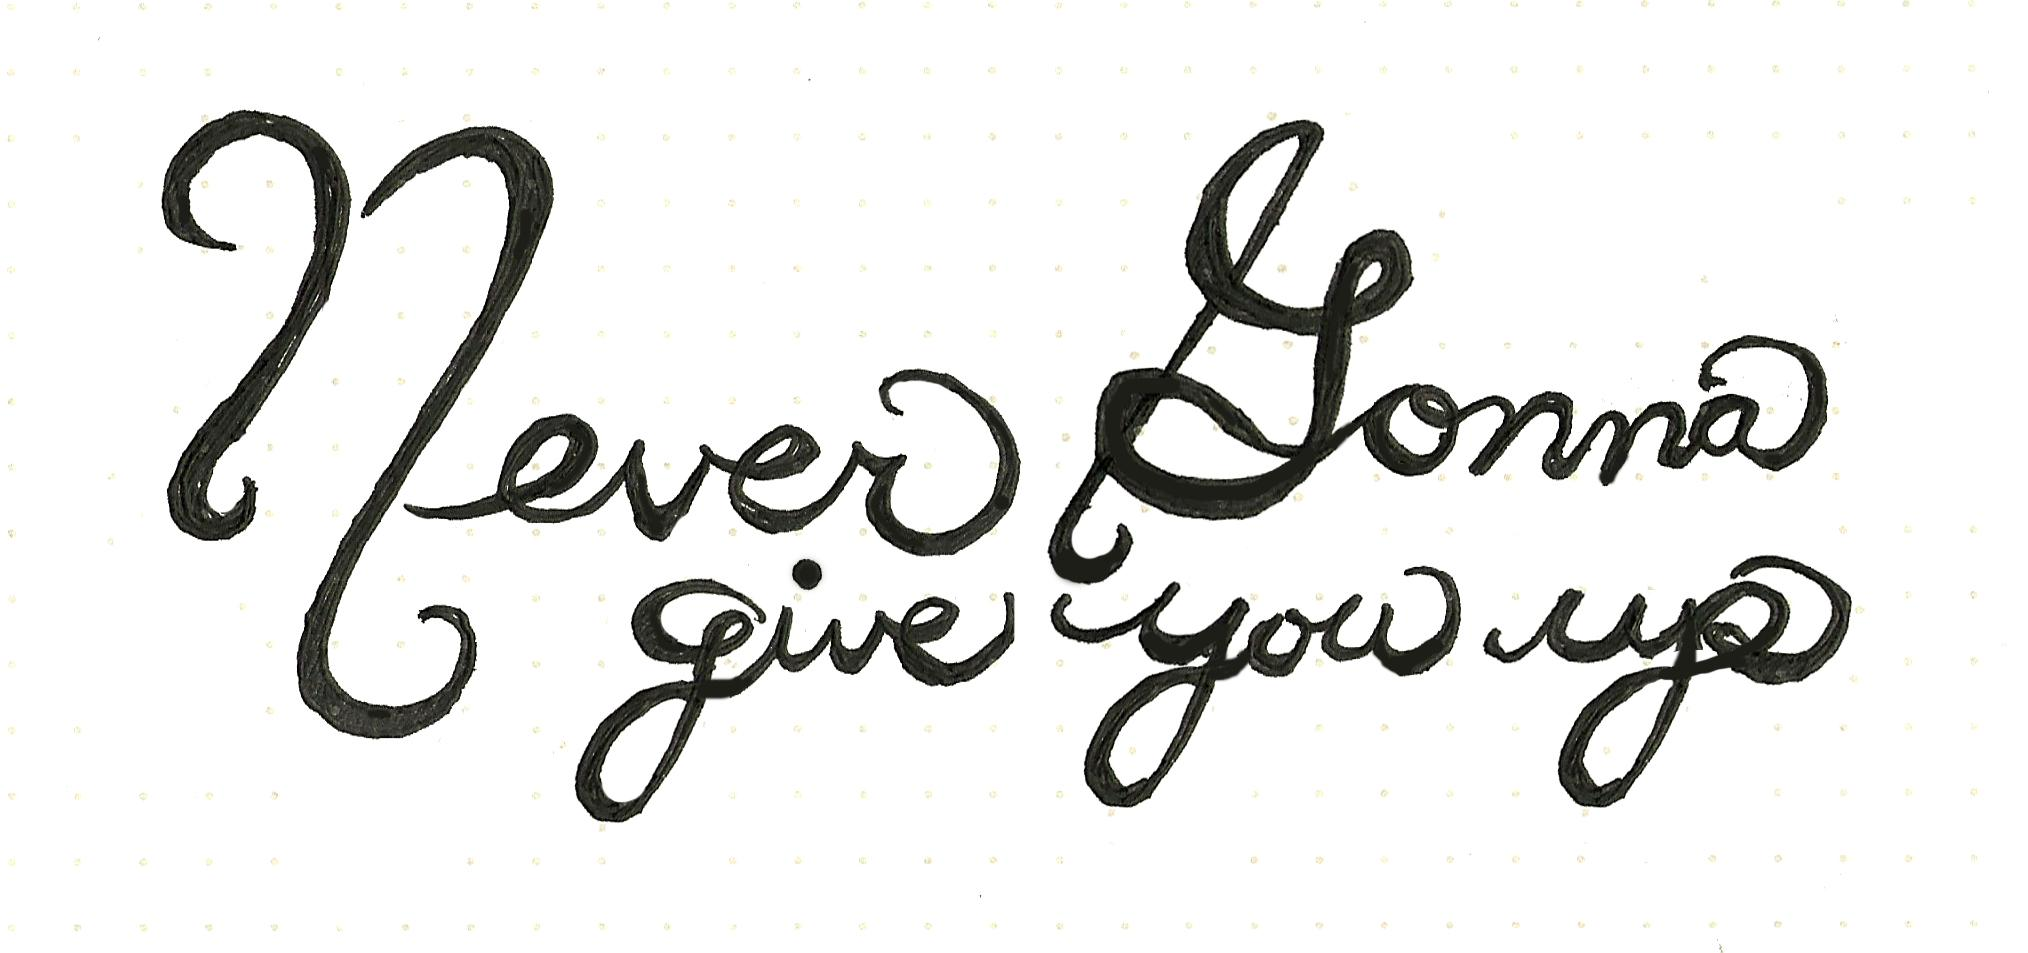 Never Gonna Give You Up - image 3 - student project